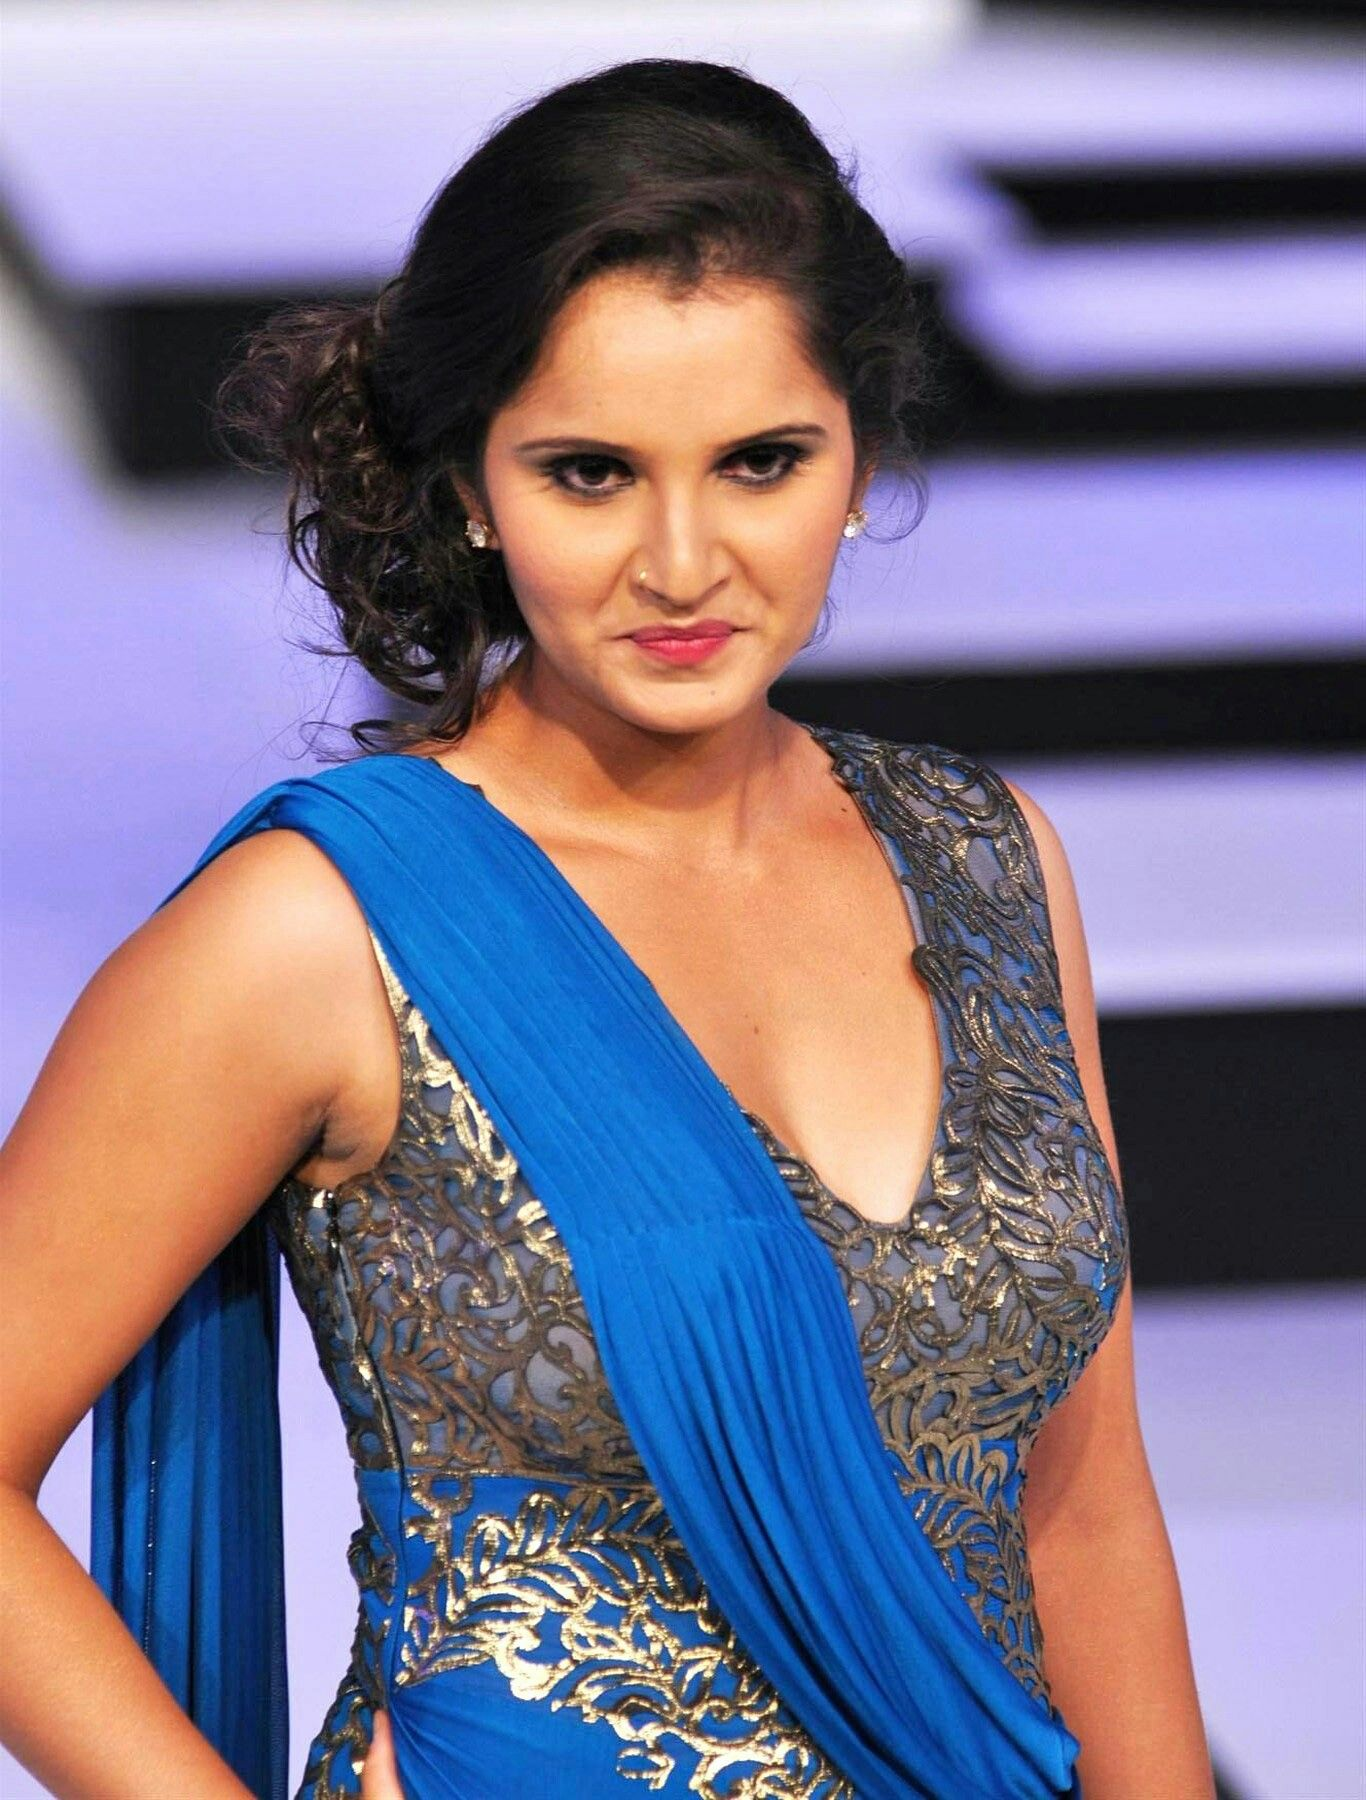 Sania mirza showing her boobs